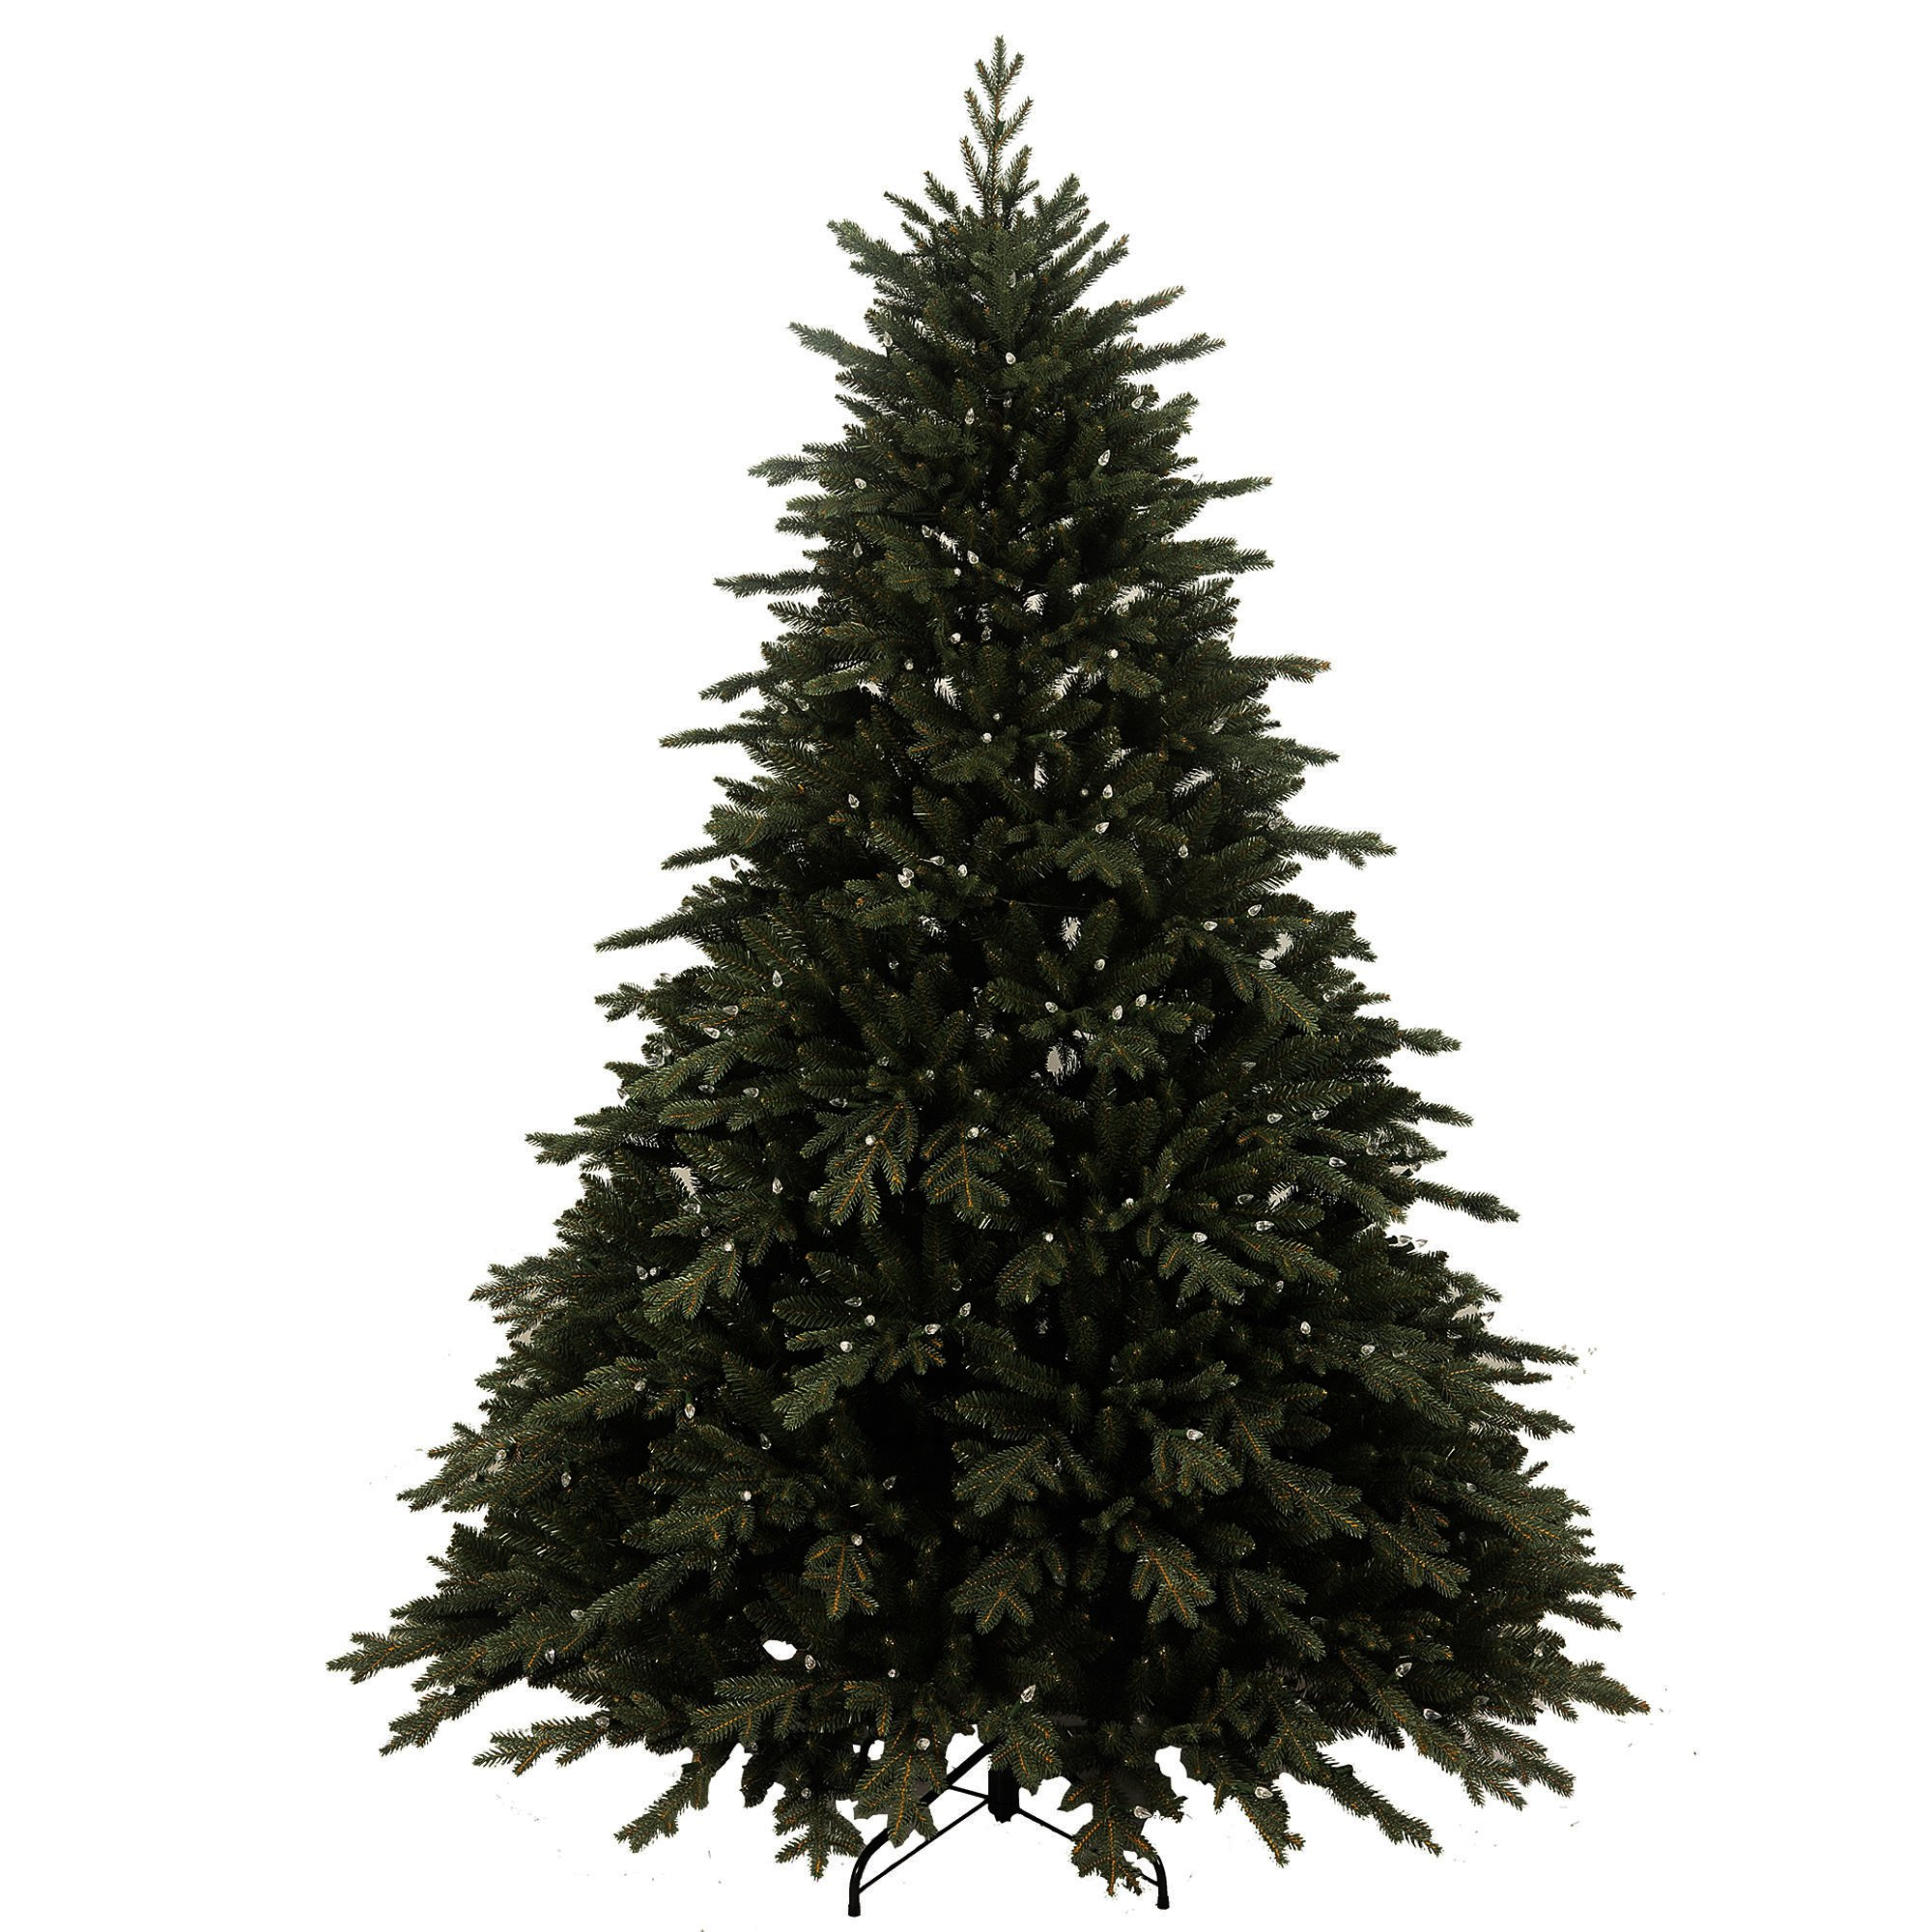 Artificial Christmas Tree. This Fake 7.5 Foot Xmas Pine Tree, Norwegian Spruce, Densely, Lush, Easy-to-shape Green Branches Looks Natural. Great For Indoor, Holiday Season Party Decor & Festive Mood.